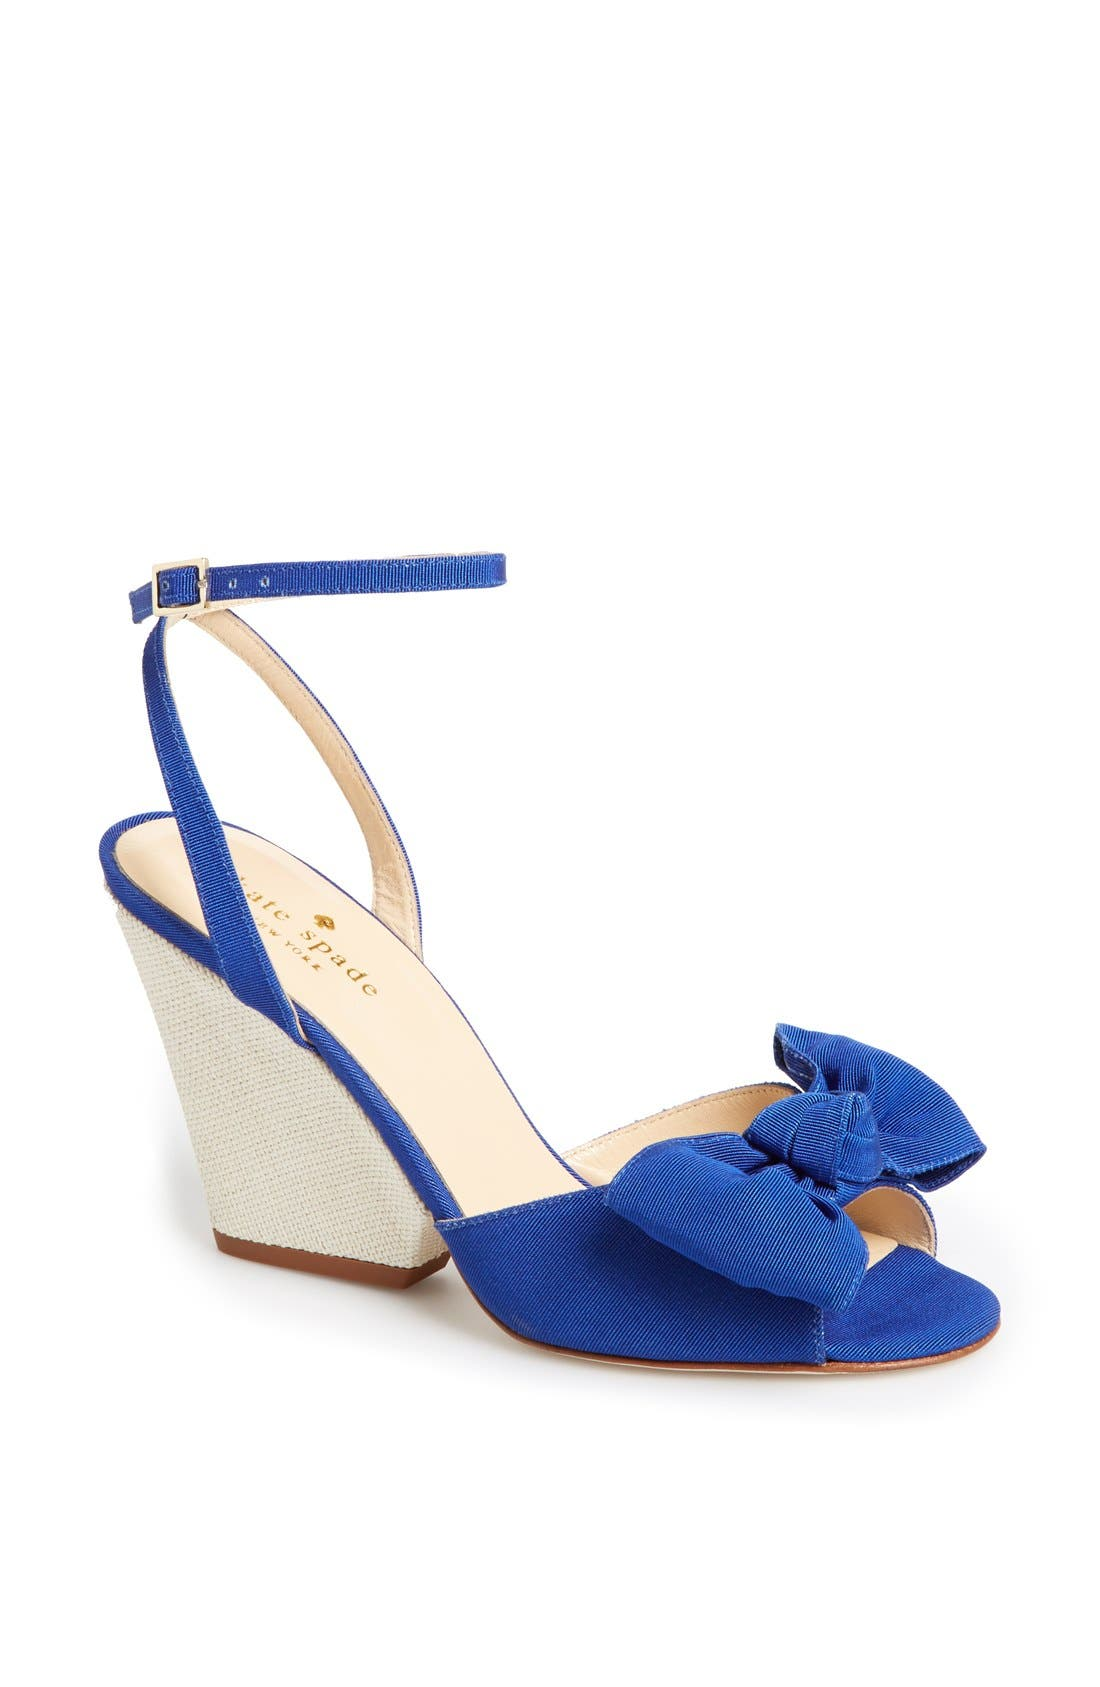 Main Image - kate spade new york 'iberis' wedge sandal